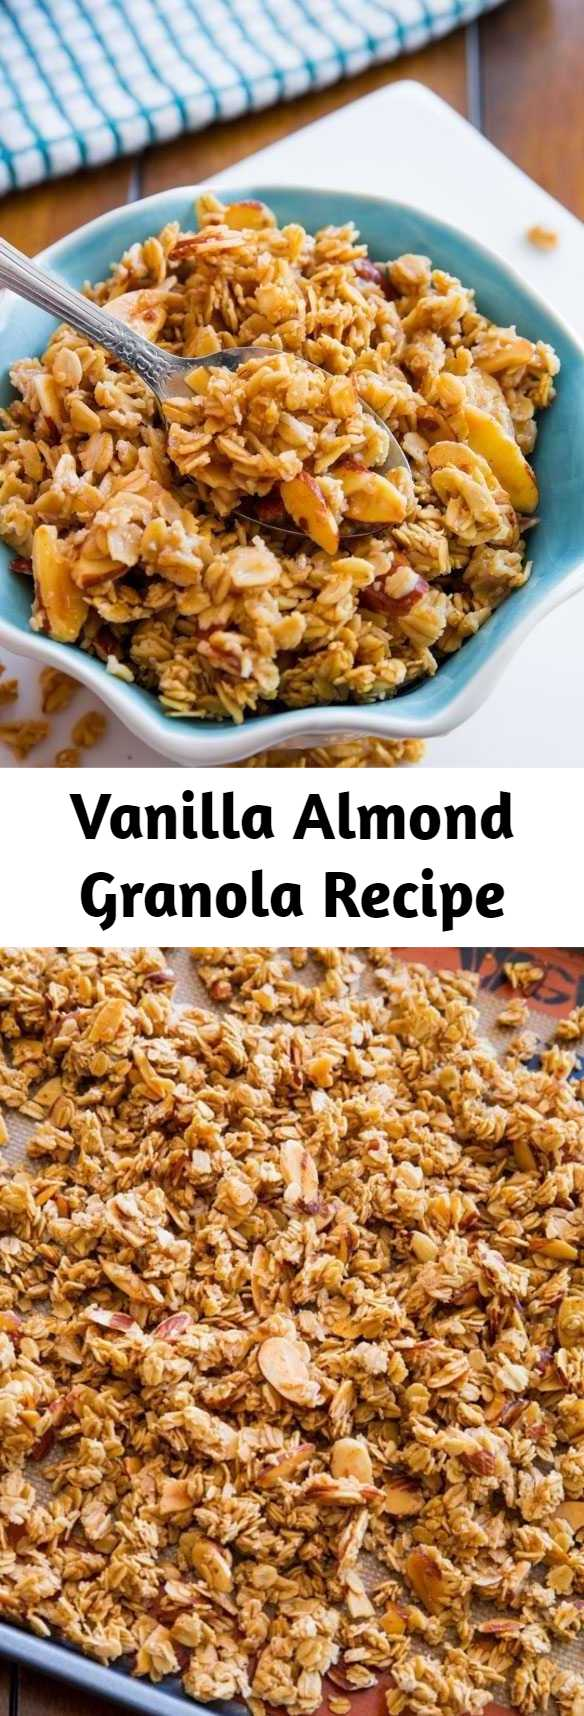 Vanilla Almond Granola Recipe - Sweet, sticky, and crunchy granola exploding with vanilla and almond flavors. Ditch store-bought, healthy homemade granola is easy! This recipe is vegan and gluten free (if using certified GF oats).